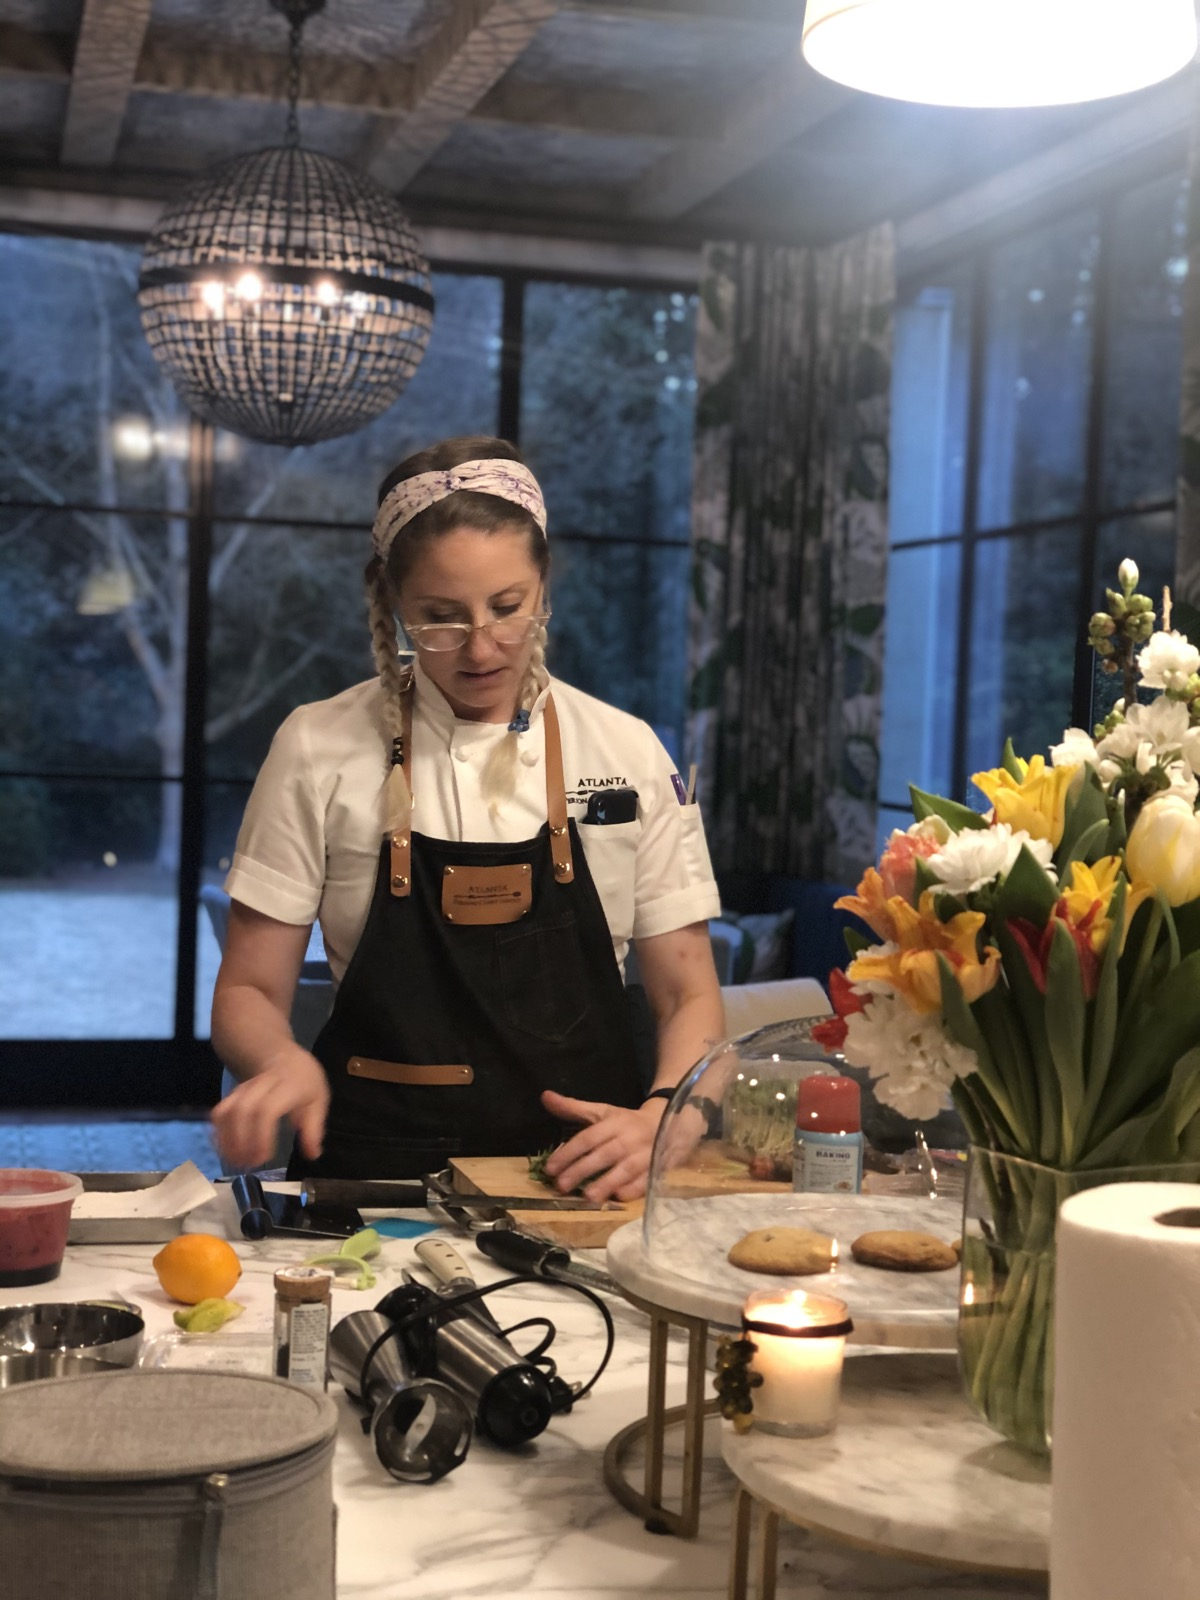 Chef Amanda chops fresh herbs in a Buckhead home kitchen